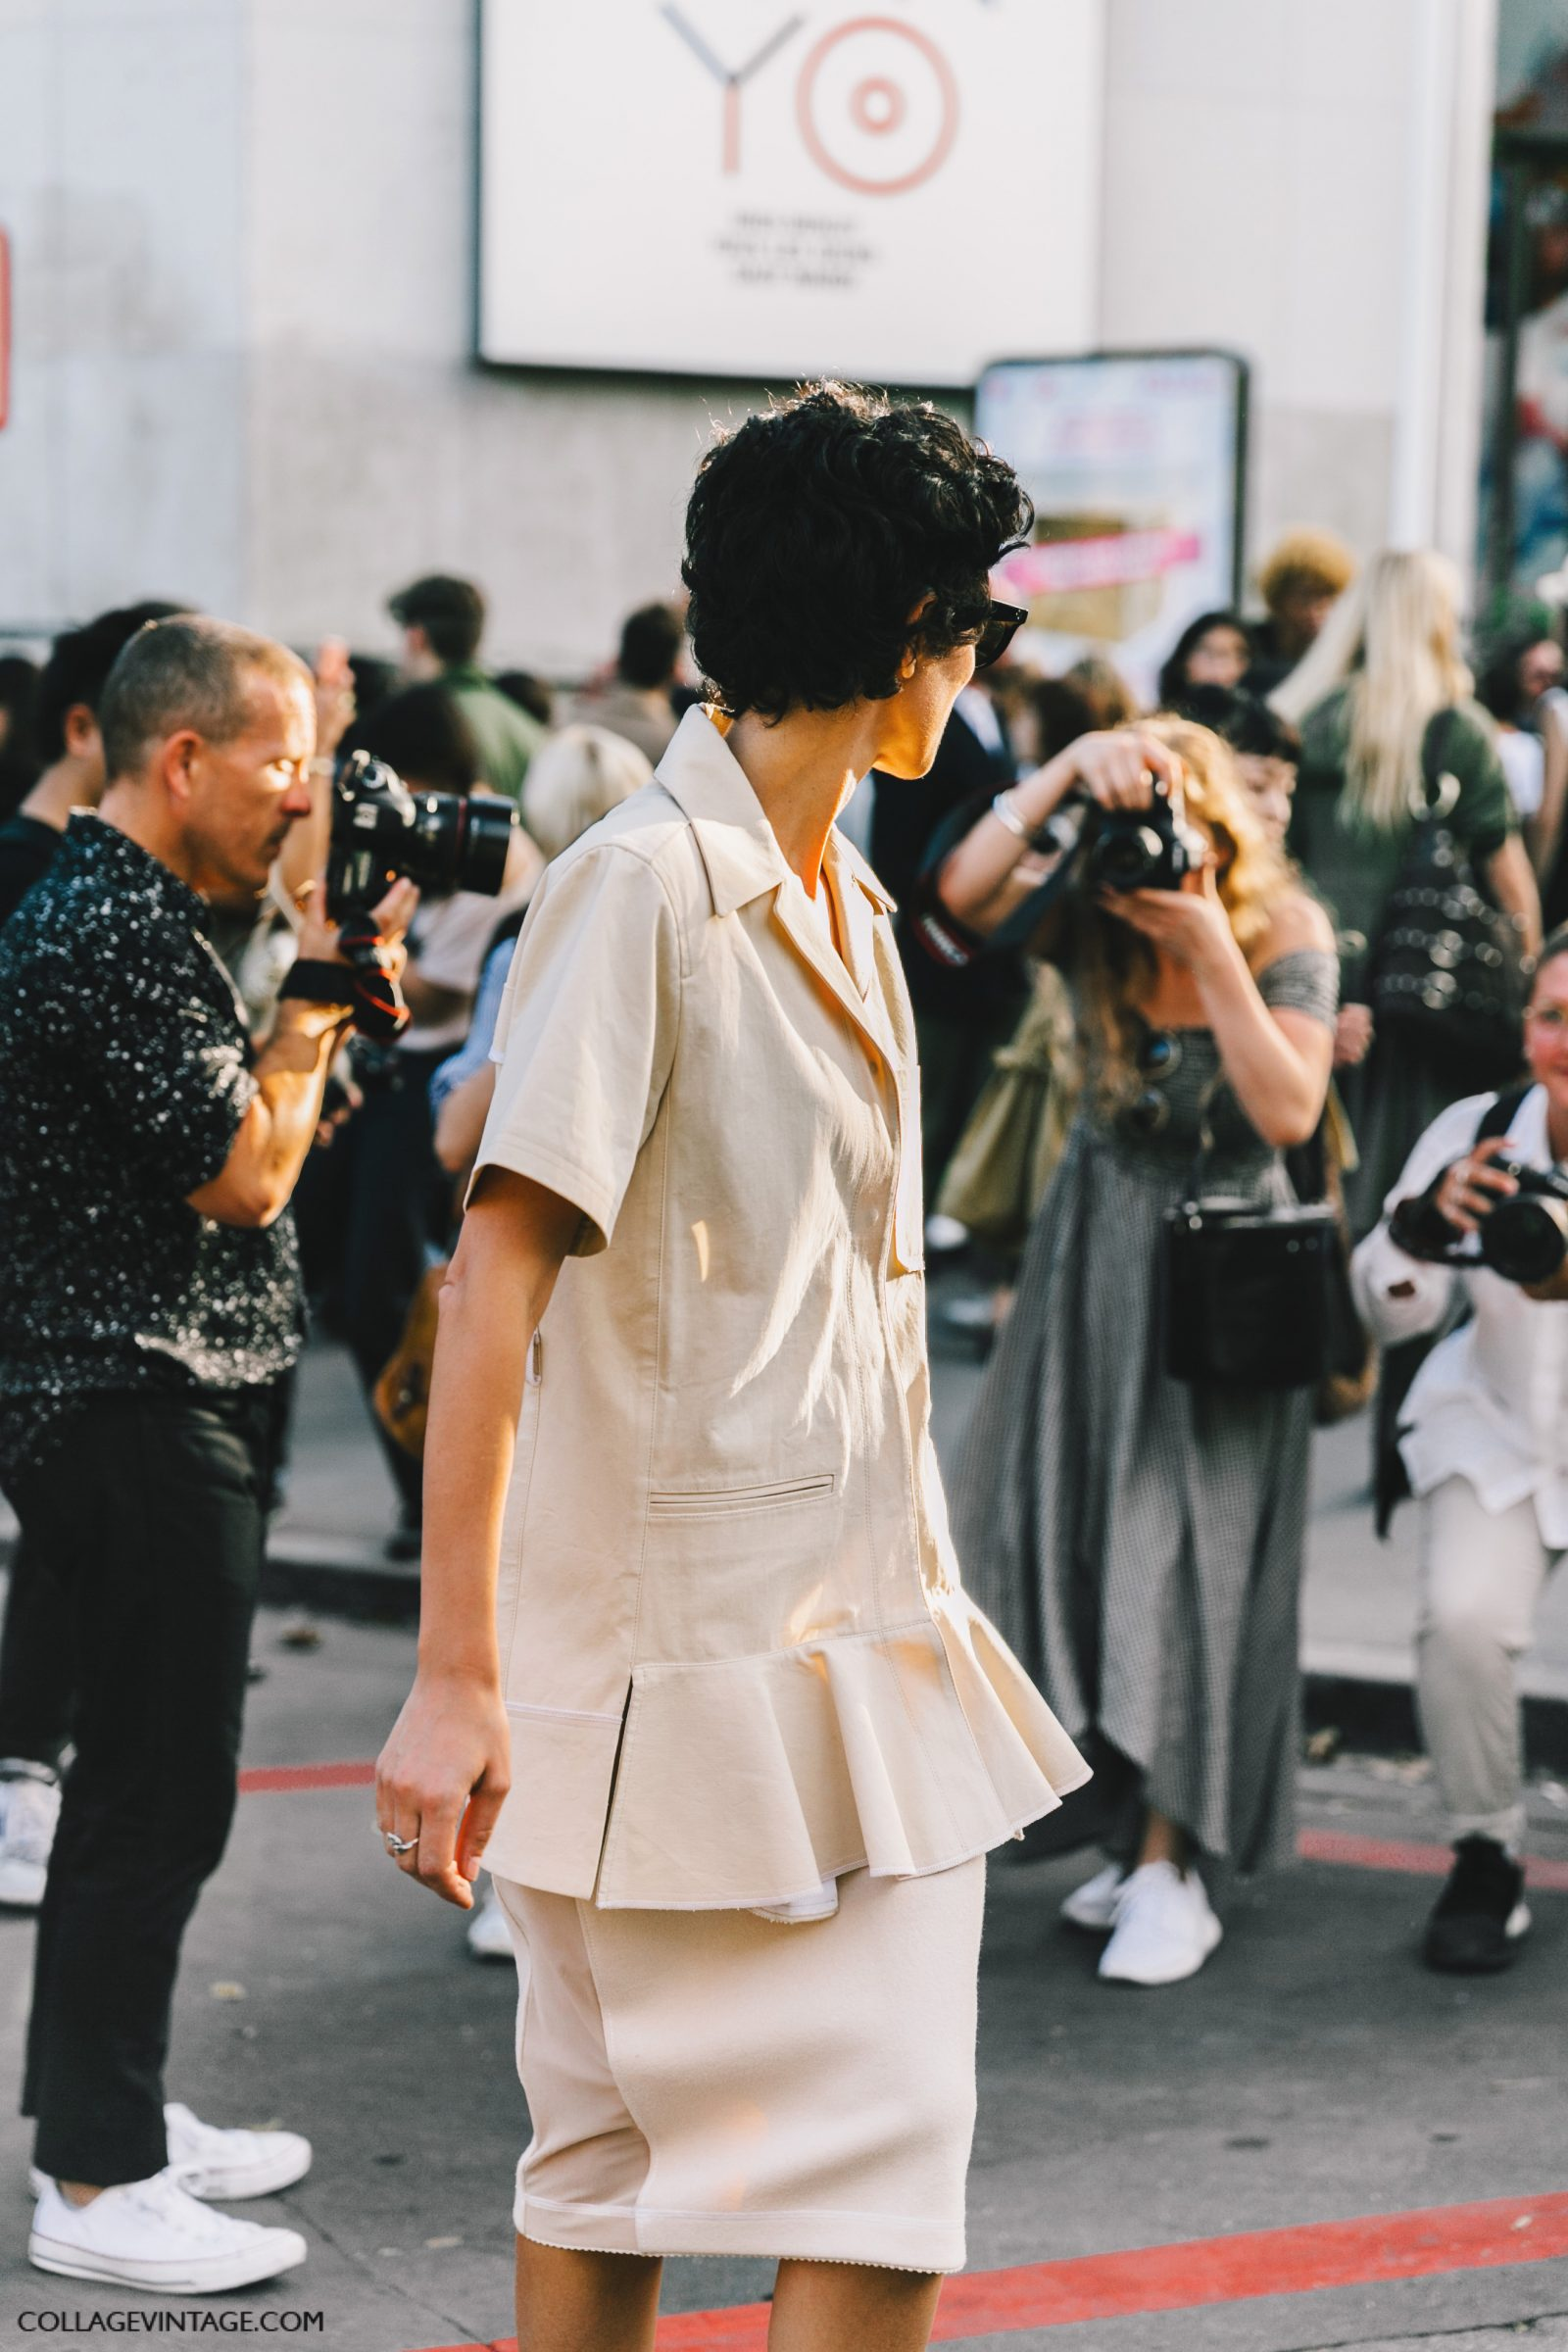 pfw-paris_fashion_week_ss17-street_style-outfits-collage_vintage-rochas-courreges-dries_van_noten-lanvin-guy_laroche-216